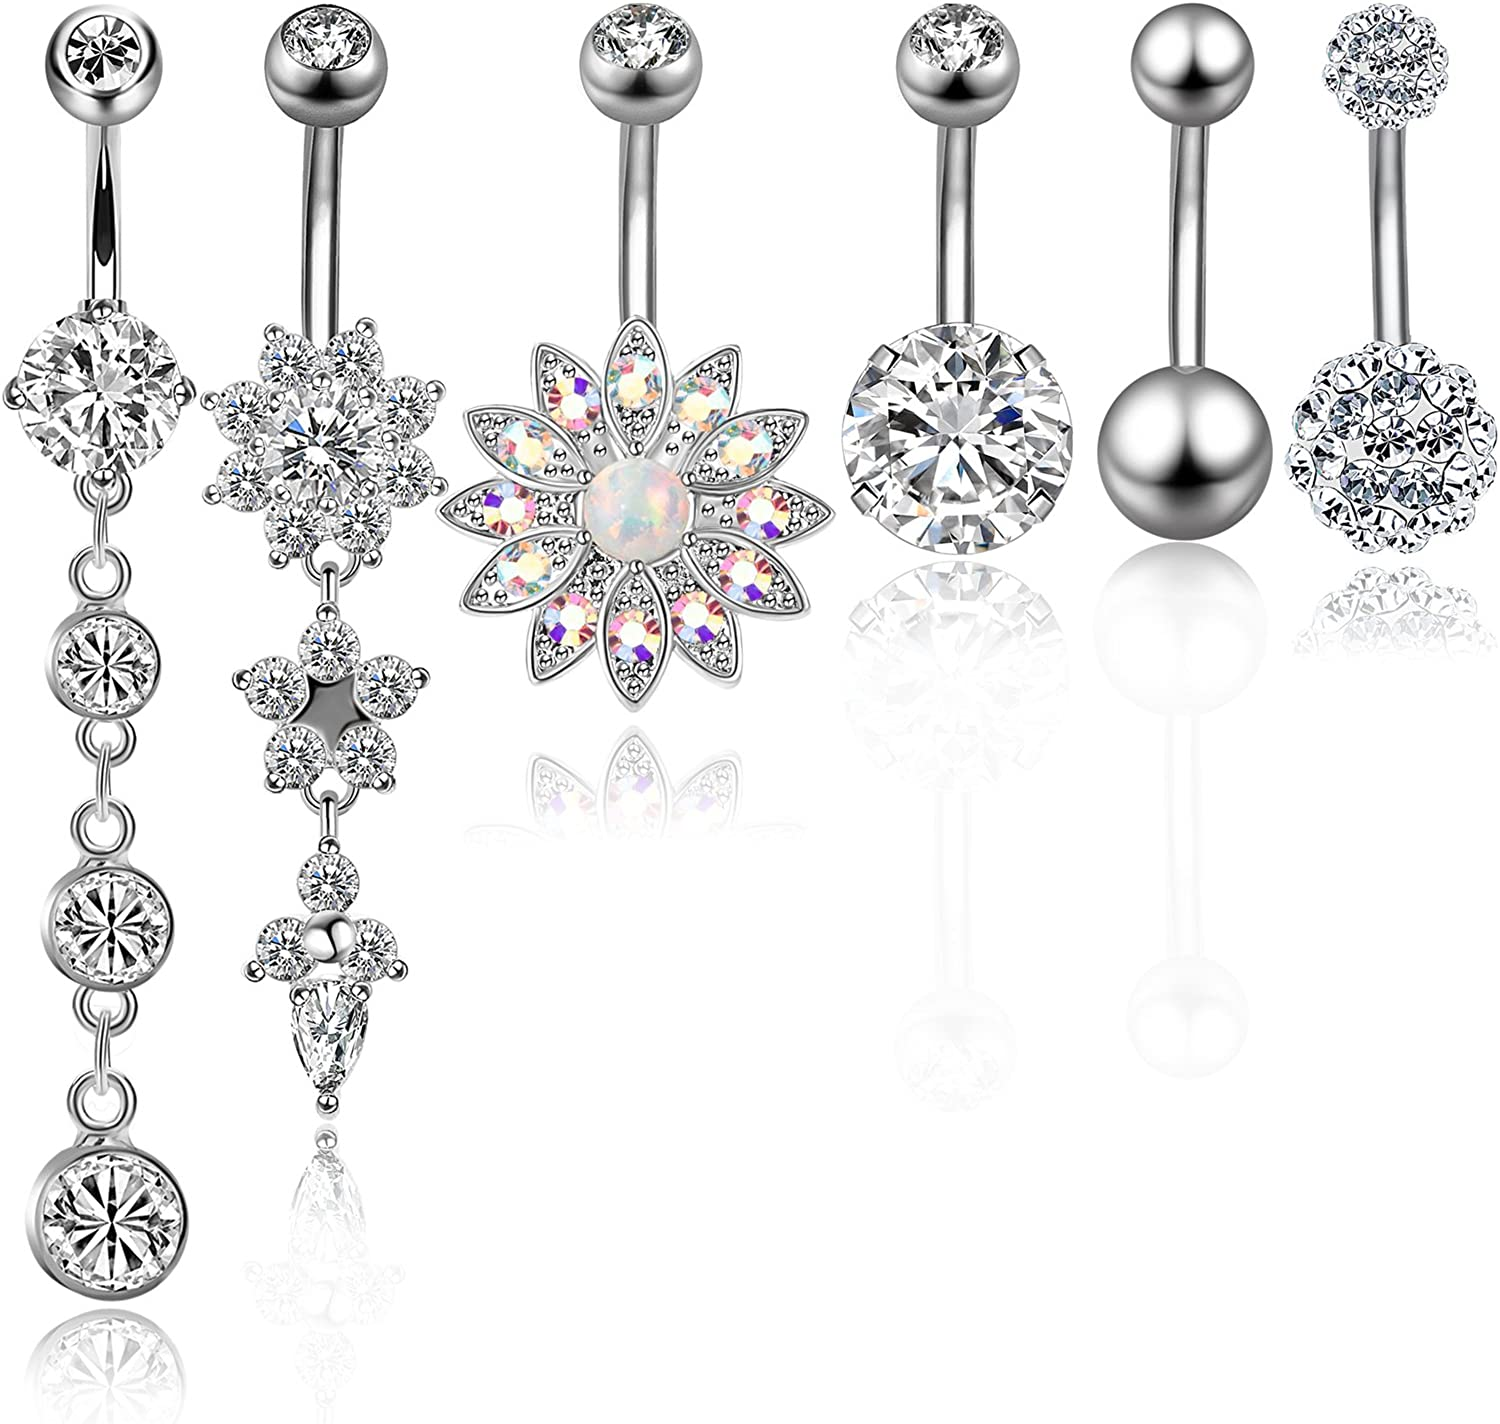 CABBE 6pcs Belly Button Rings Stainless Steel Dangle Navel Barbells Set 14G for Women Girls Body Piercing Jewelry